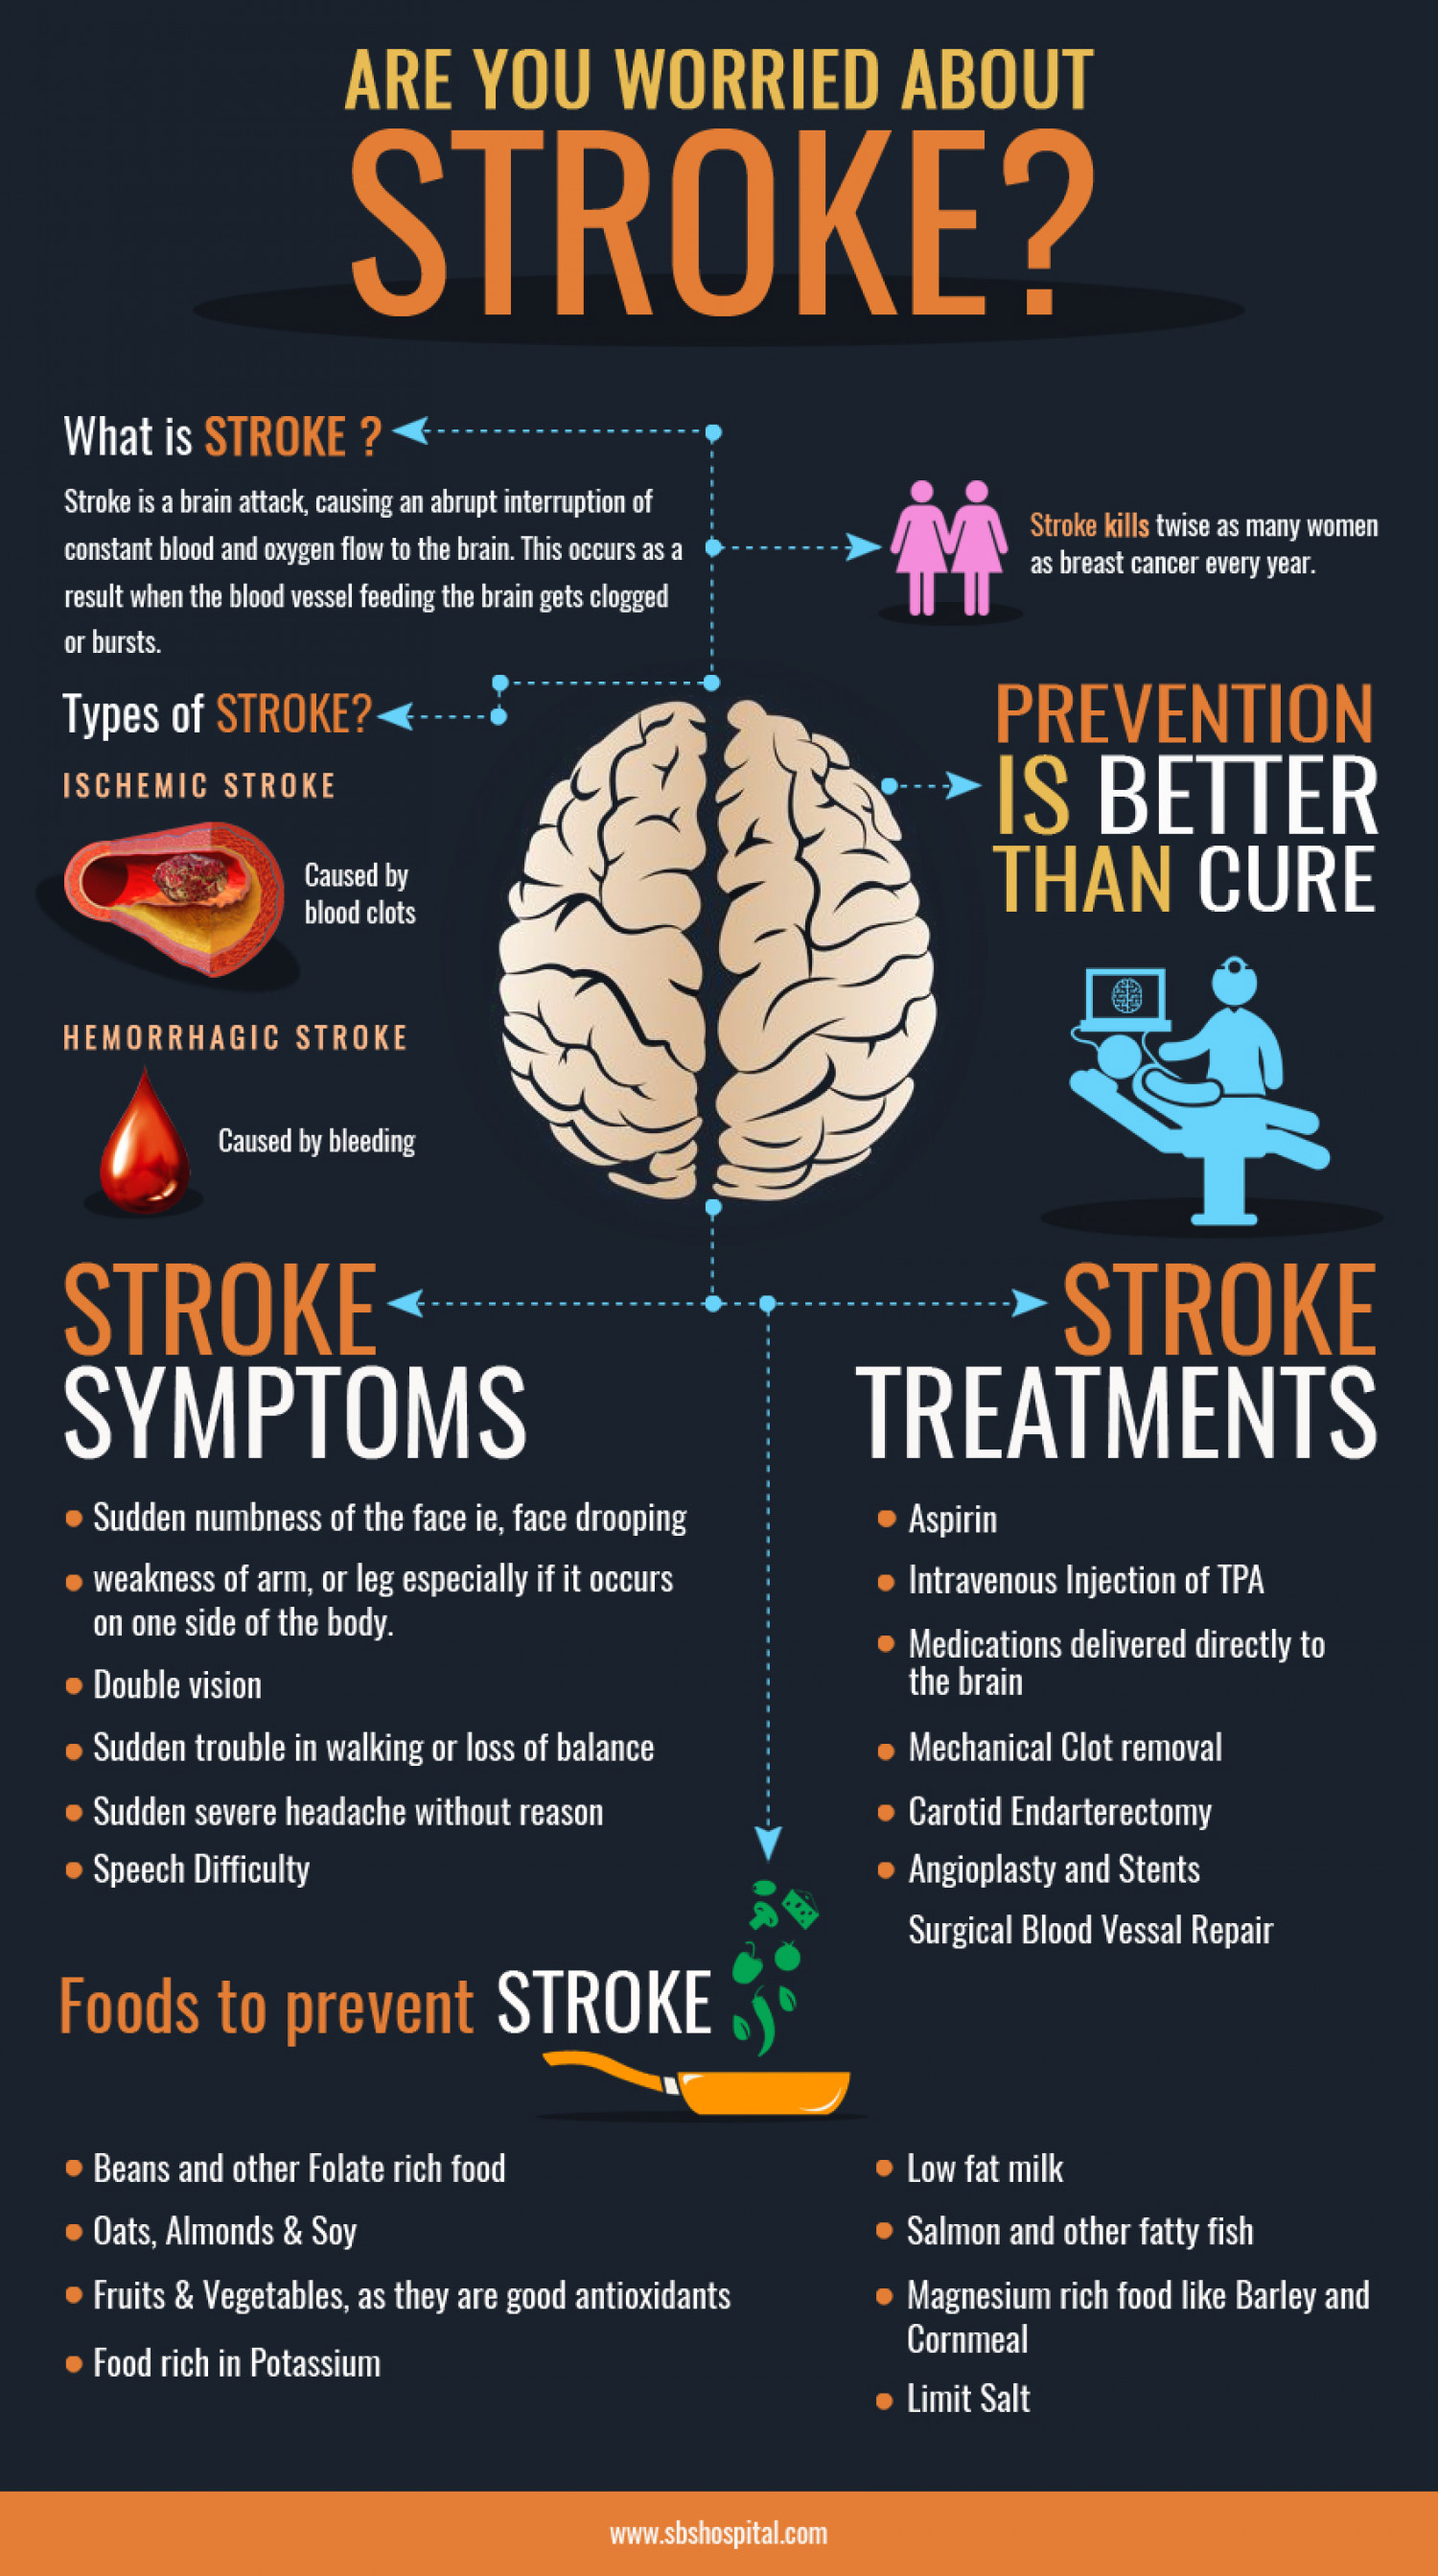 Are You Worried About Stroke? Infographic